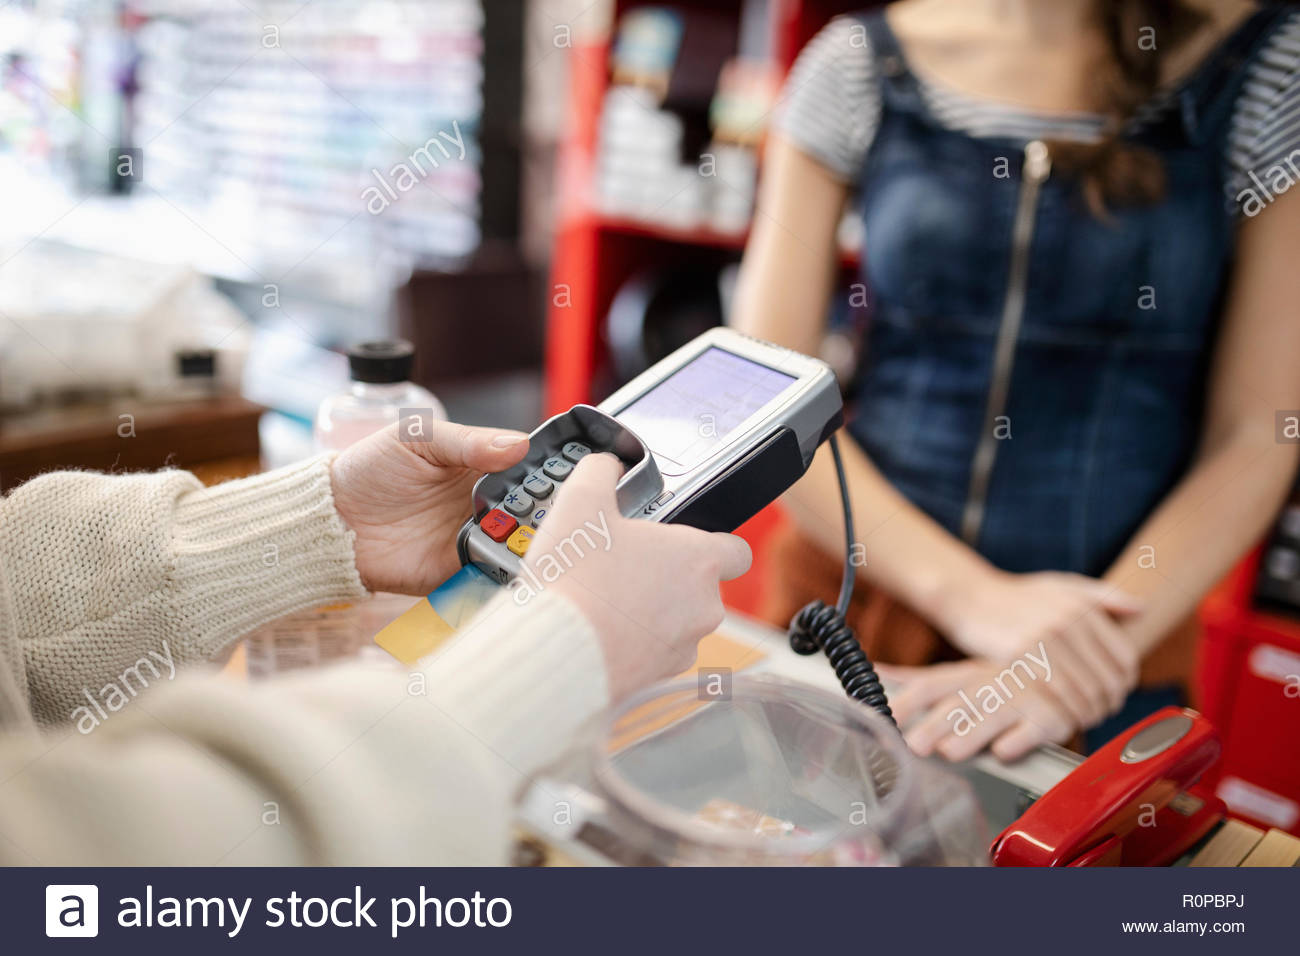 Close up female shopper paying, using credit card reader pin entry - Stock Image